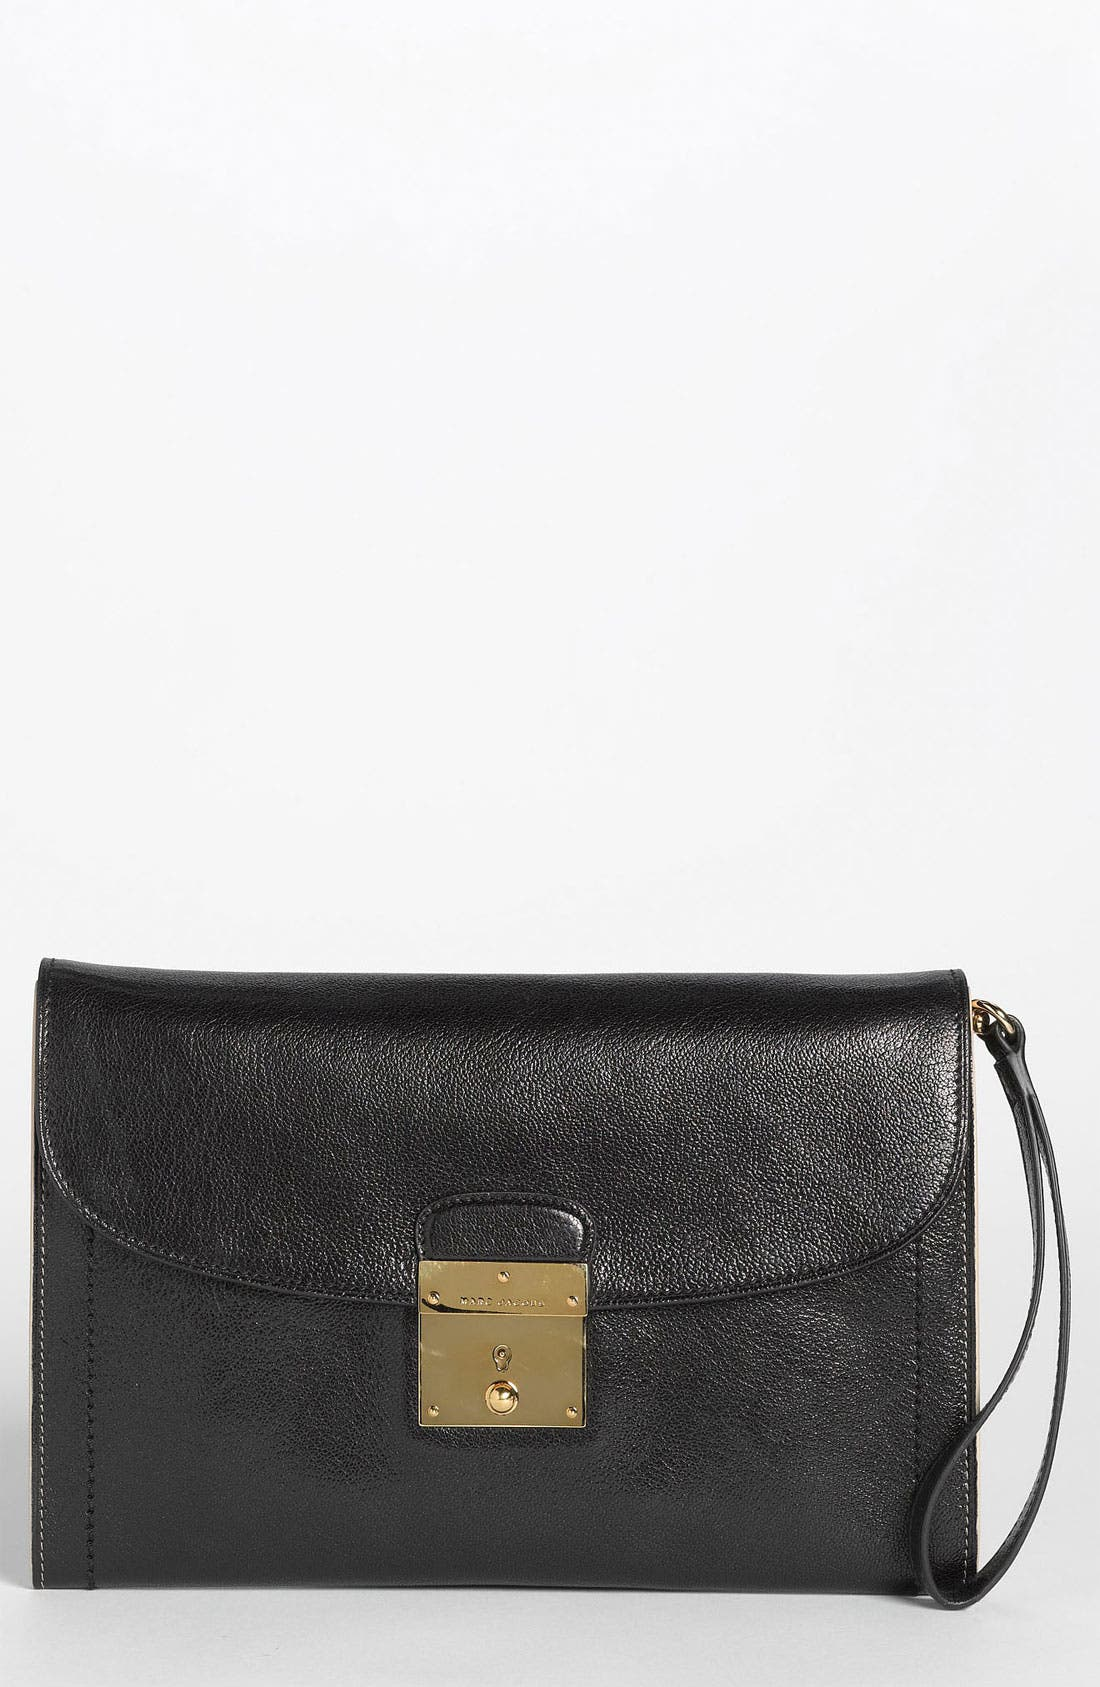 '1984 Isobel' Leather Clutch, Main, color, 001